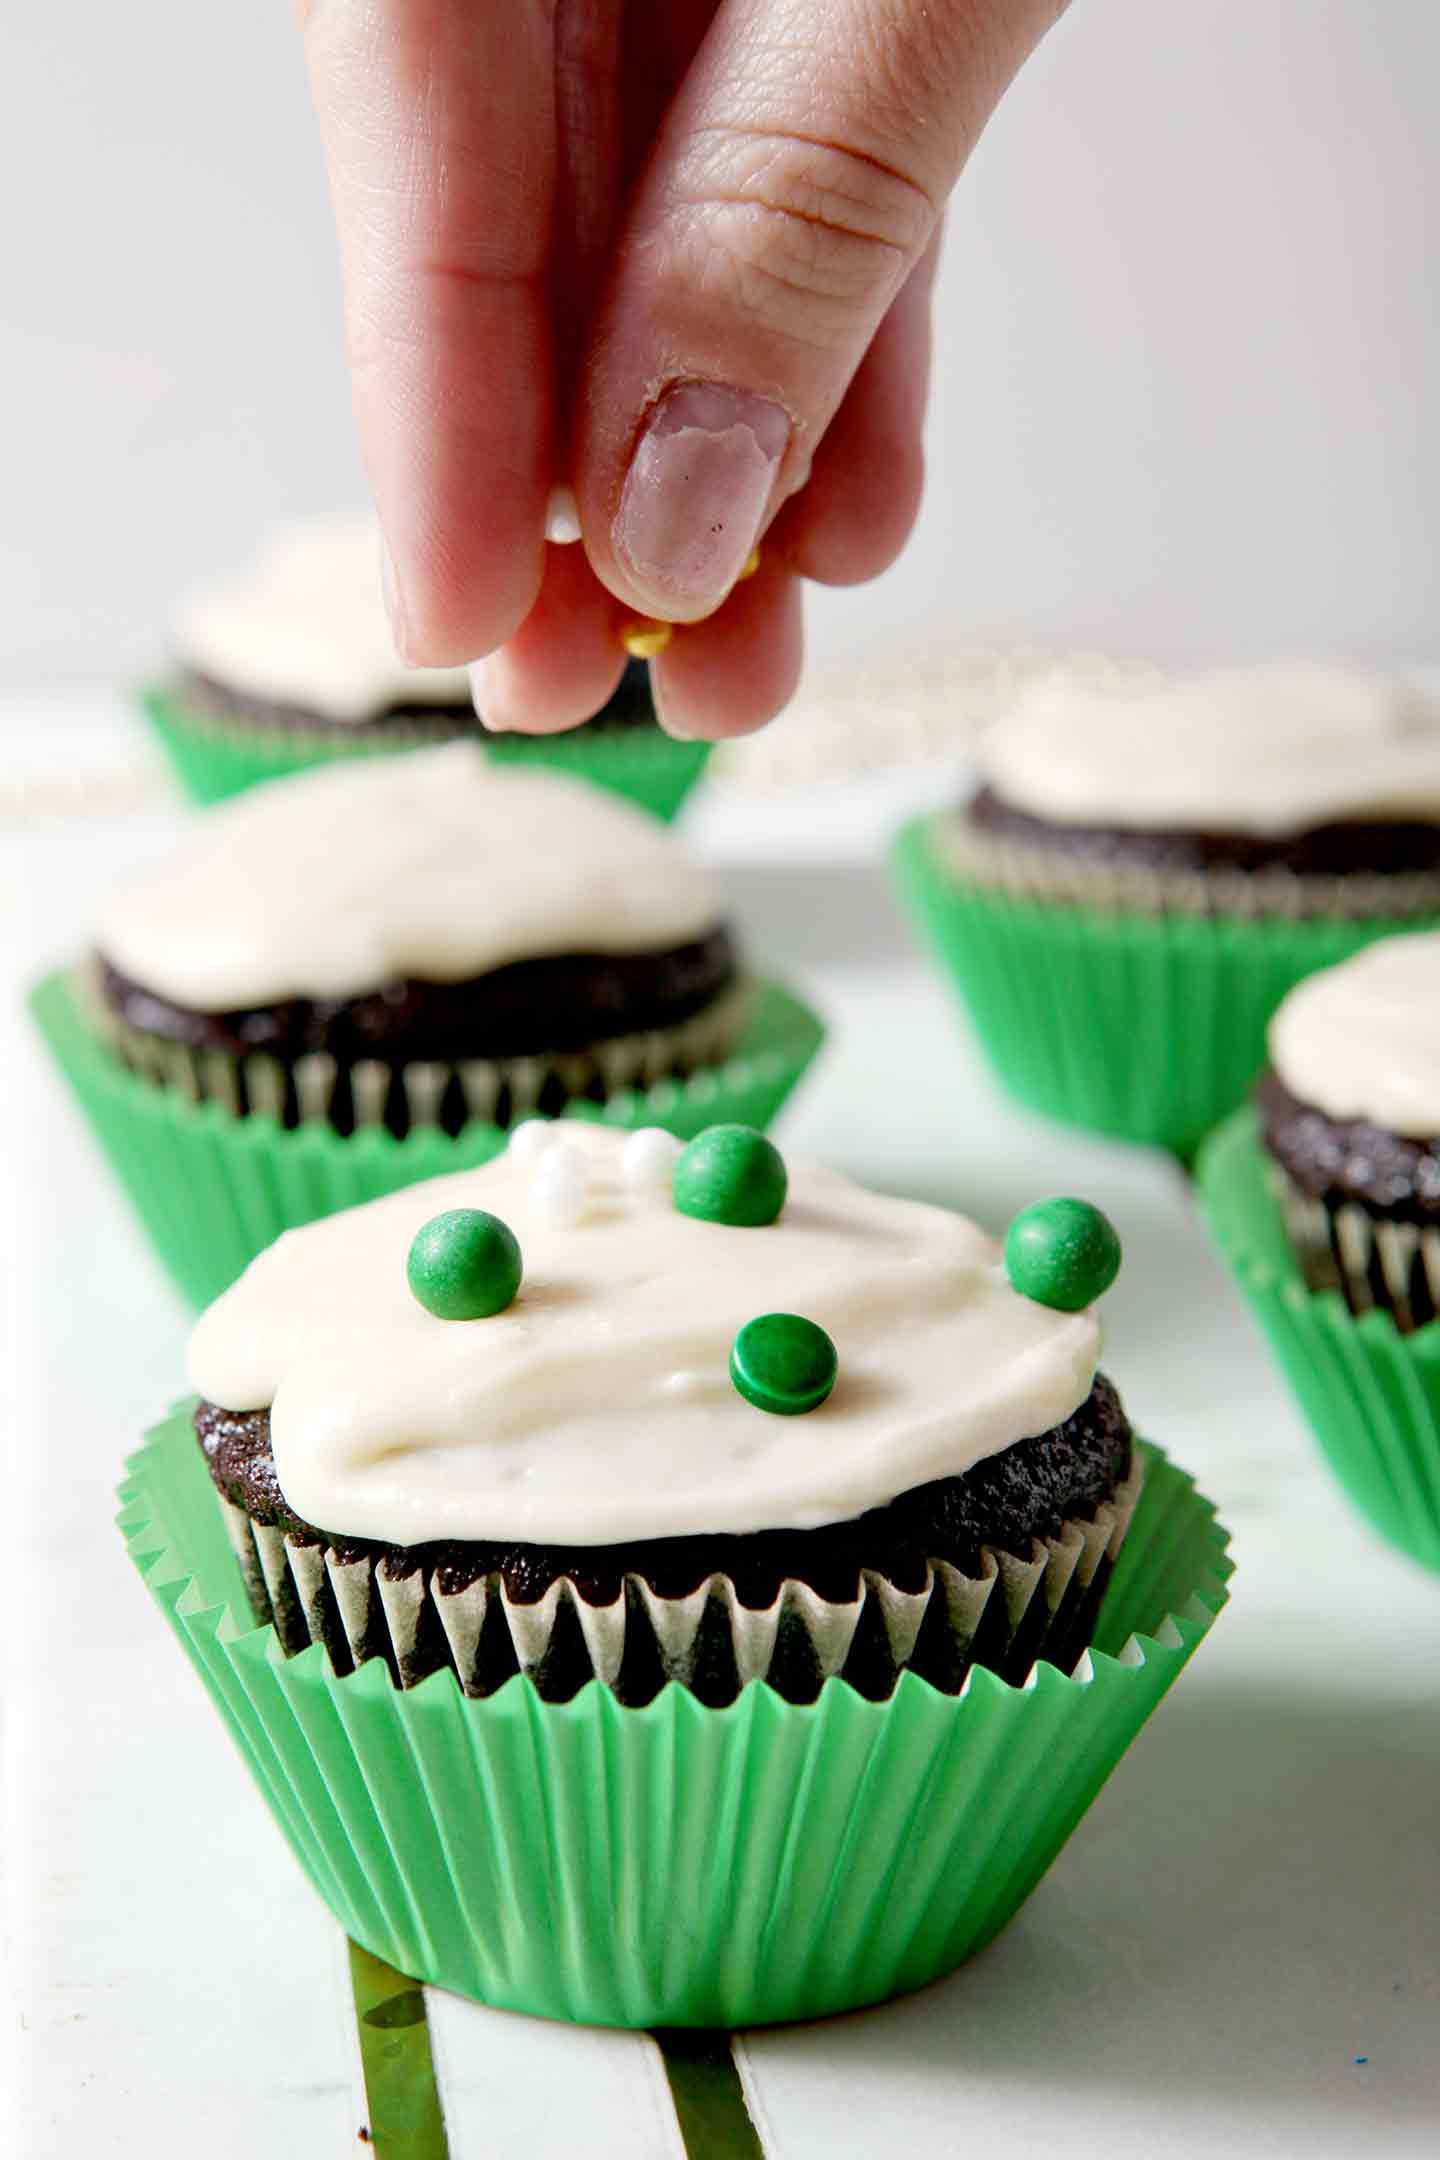 Chocolate Guinness Cupcakes, iced with Bailey's Icing, being decorated with green, white and gold sprinkles